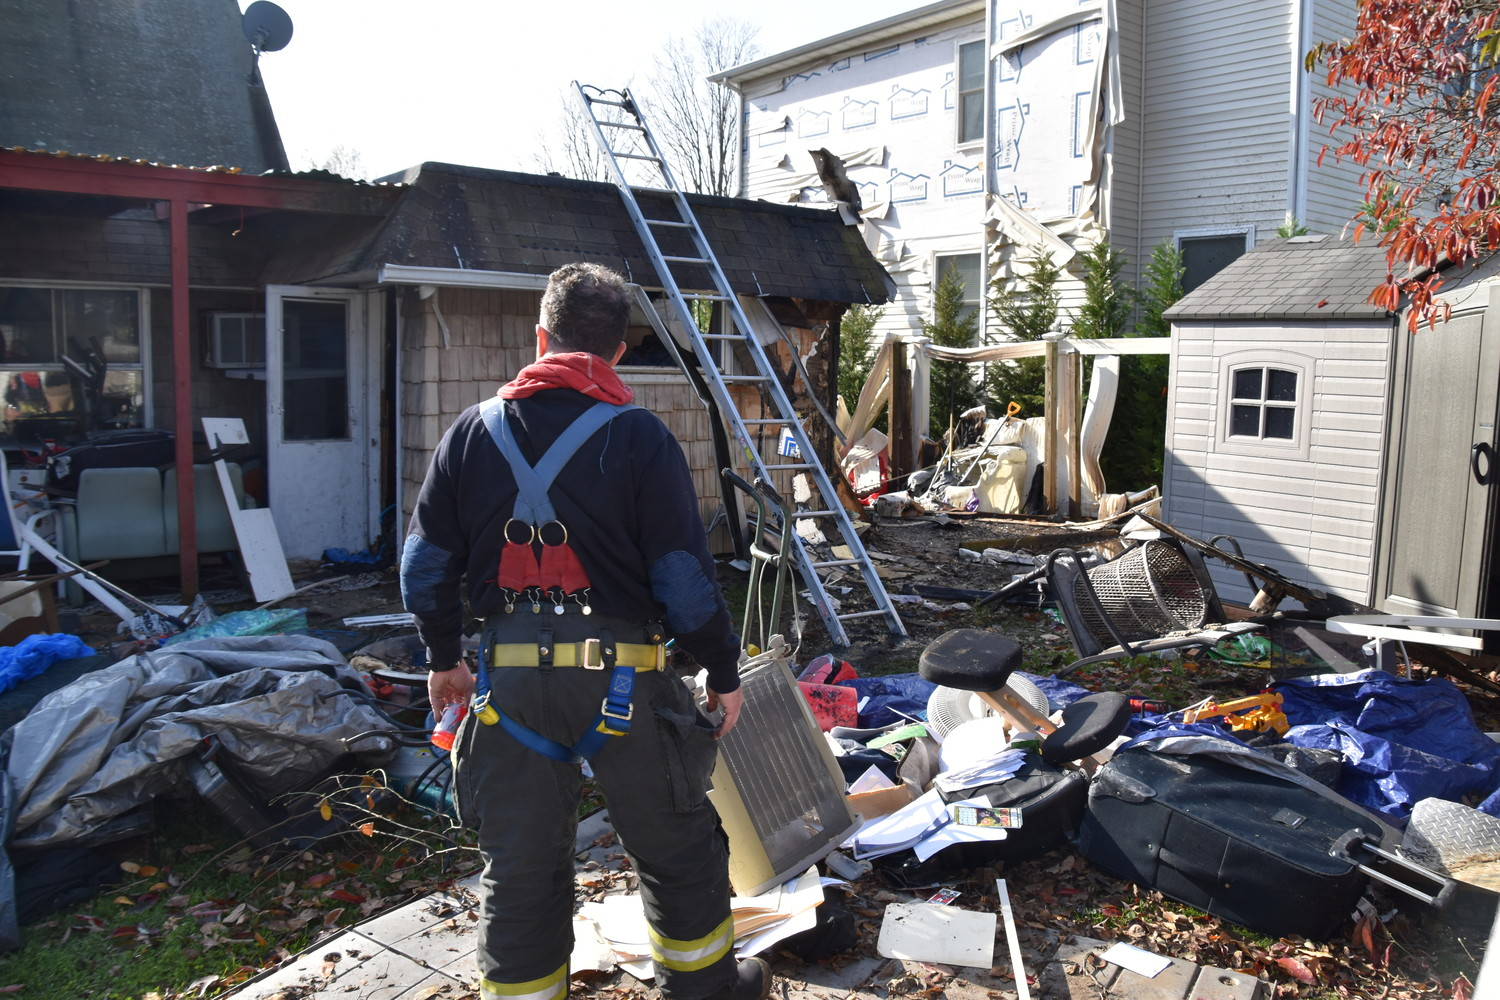 The East Meadow Fire Department responded to a house fire on Friends Lane in Westbury on Nov. 12. The home sustained water damage at the floor, but most personal property was salvageable.